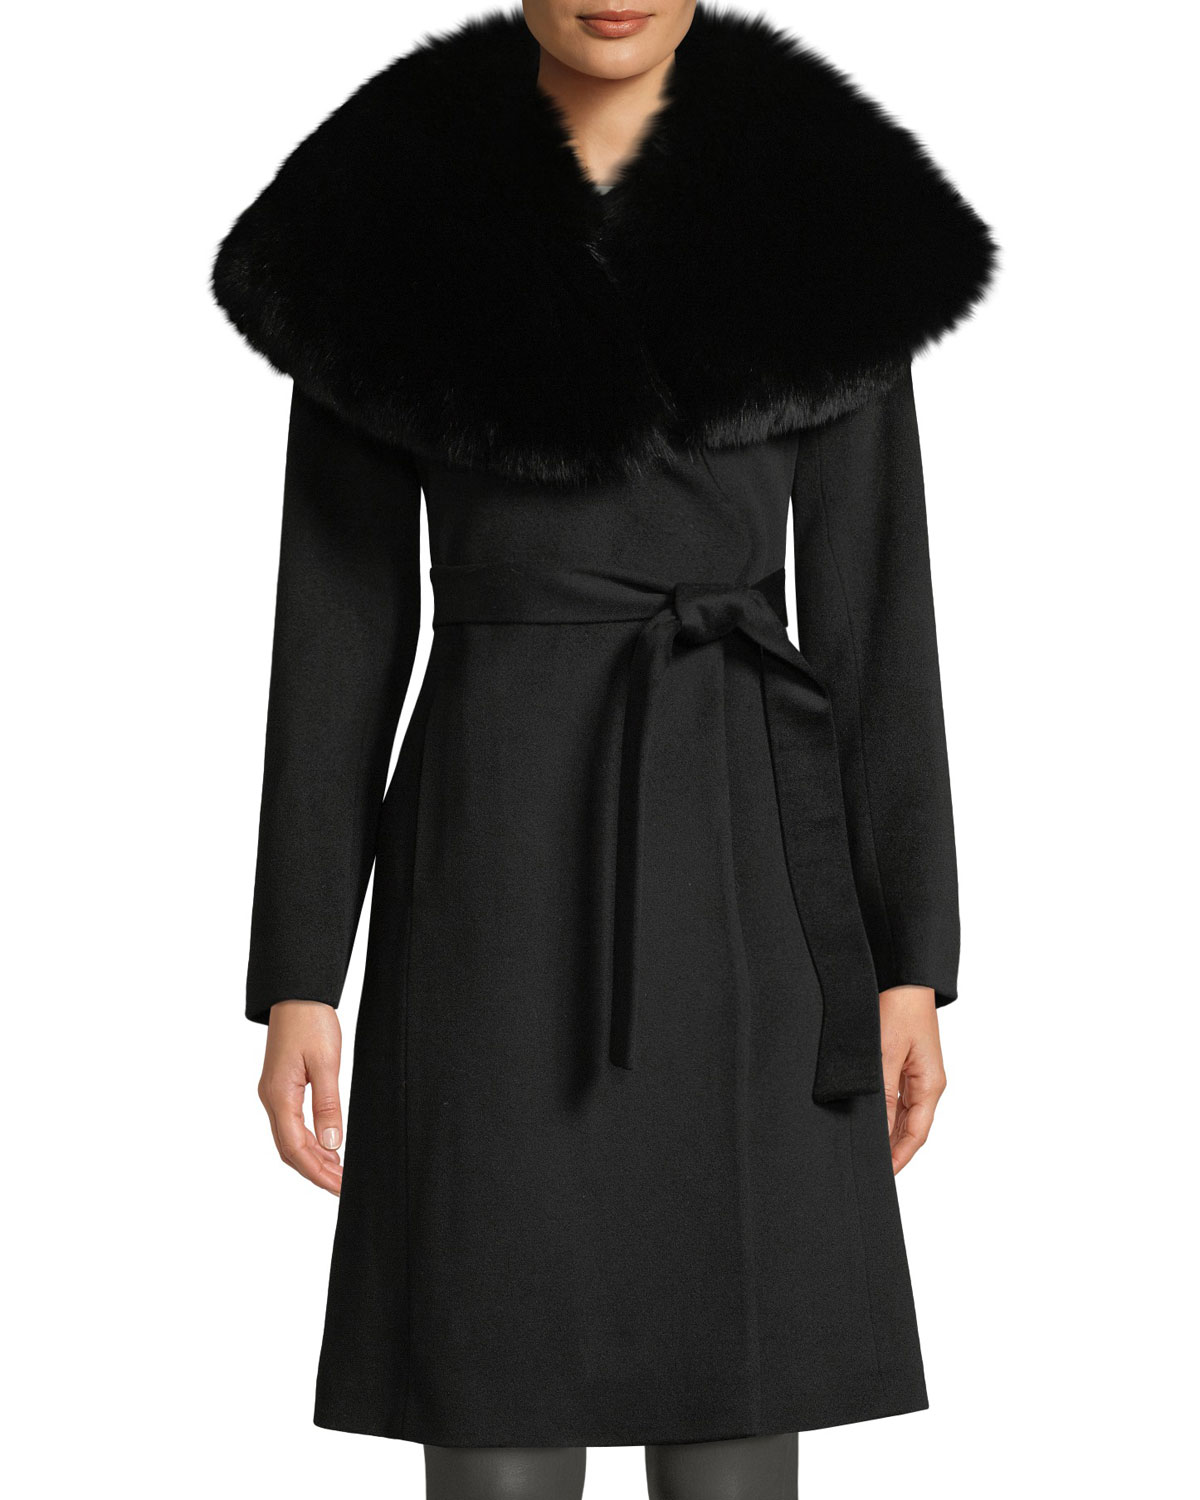 FLEURETTE Oversize Fur-Collar Wool Wrap Coat in Black